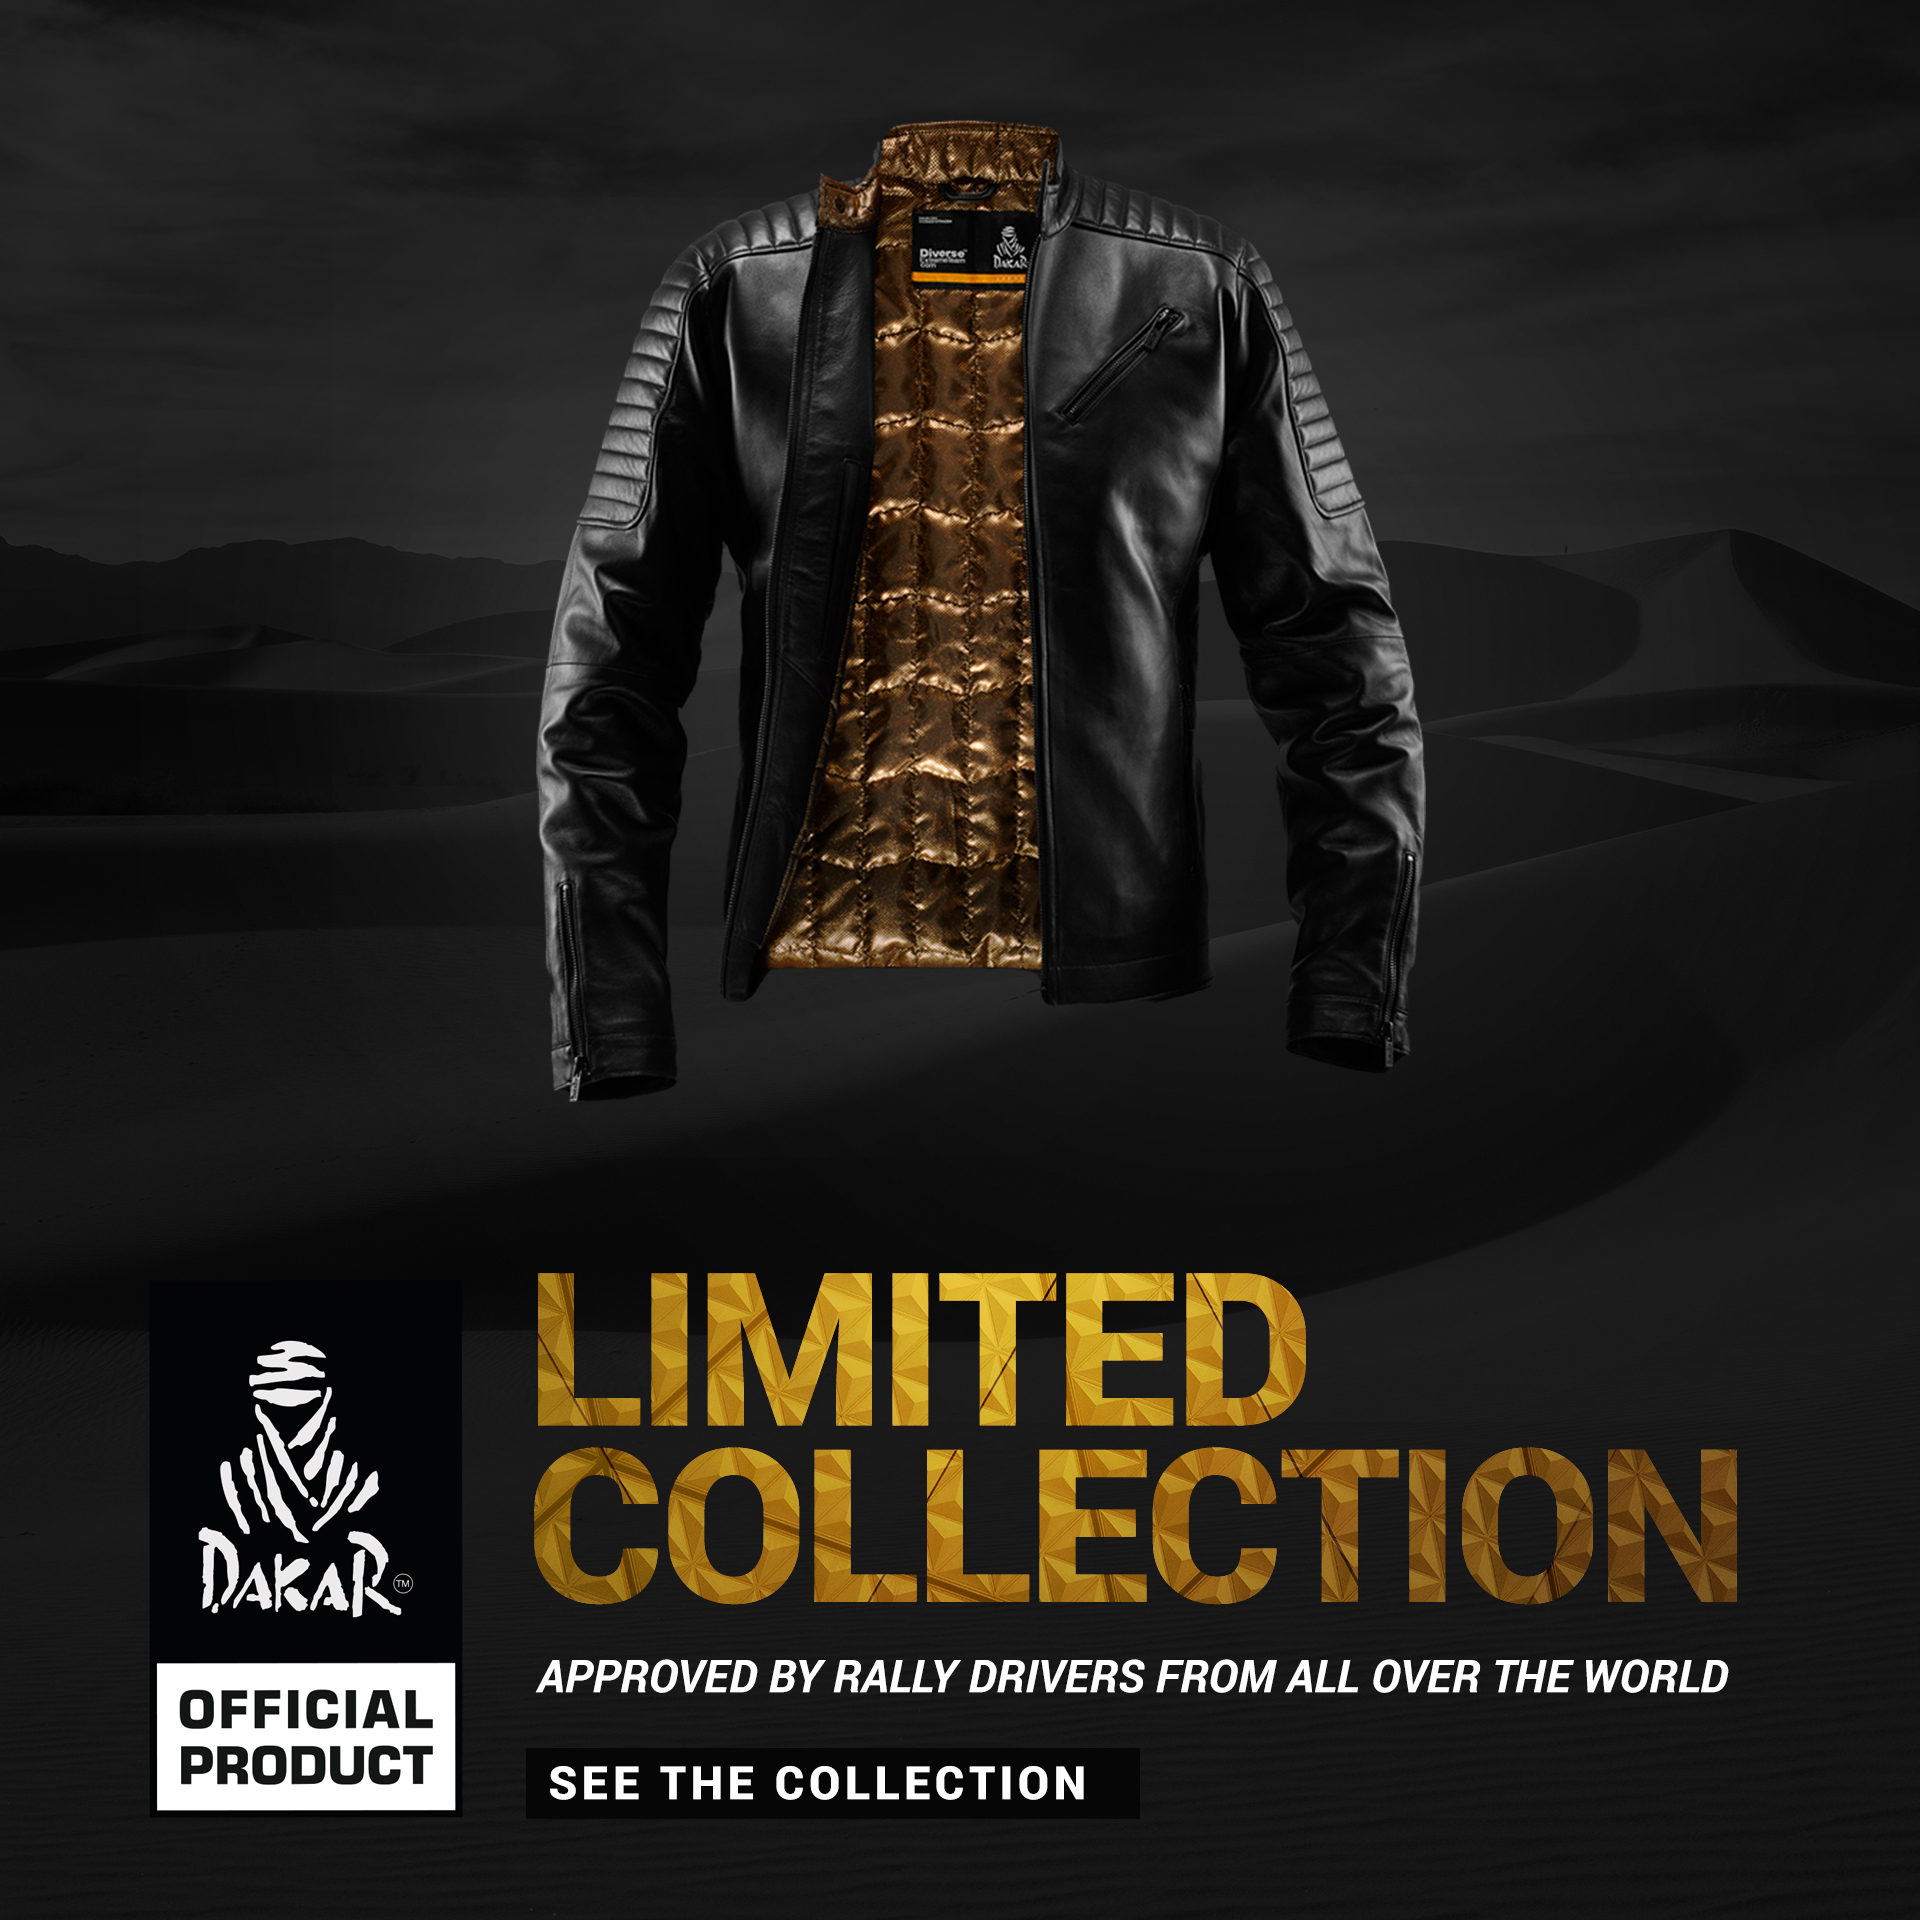 Limited Collection DAKAR VIP